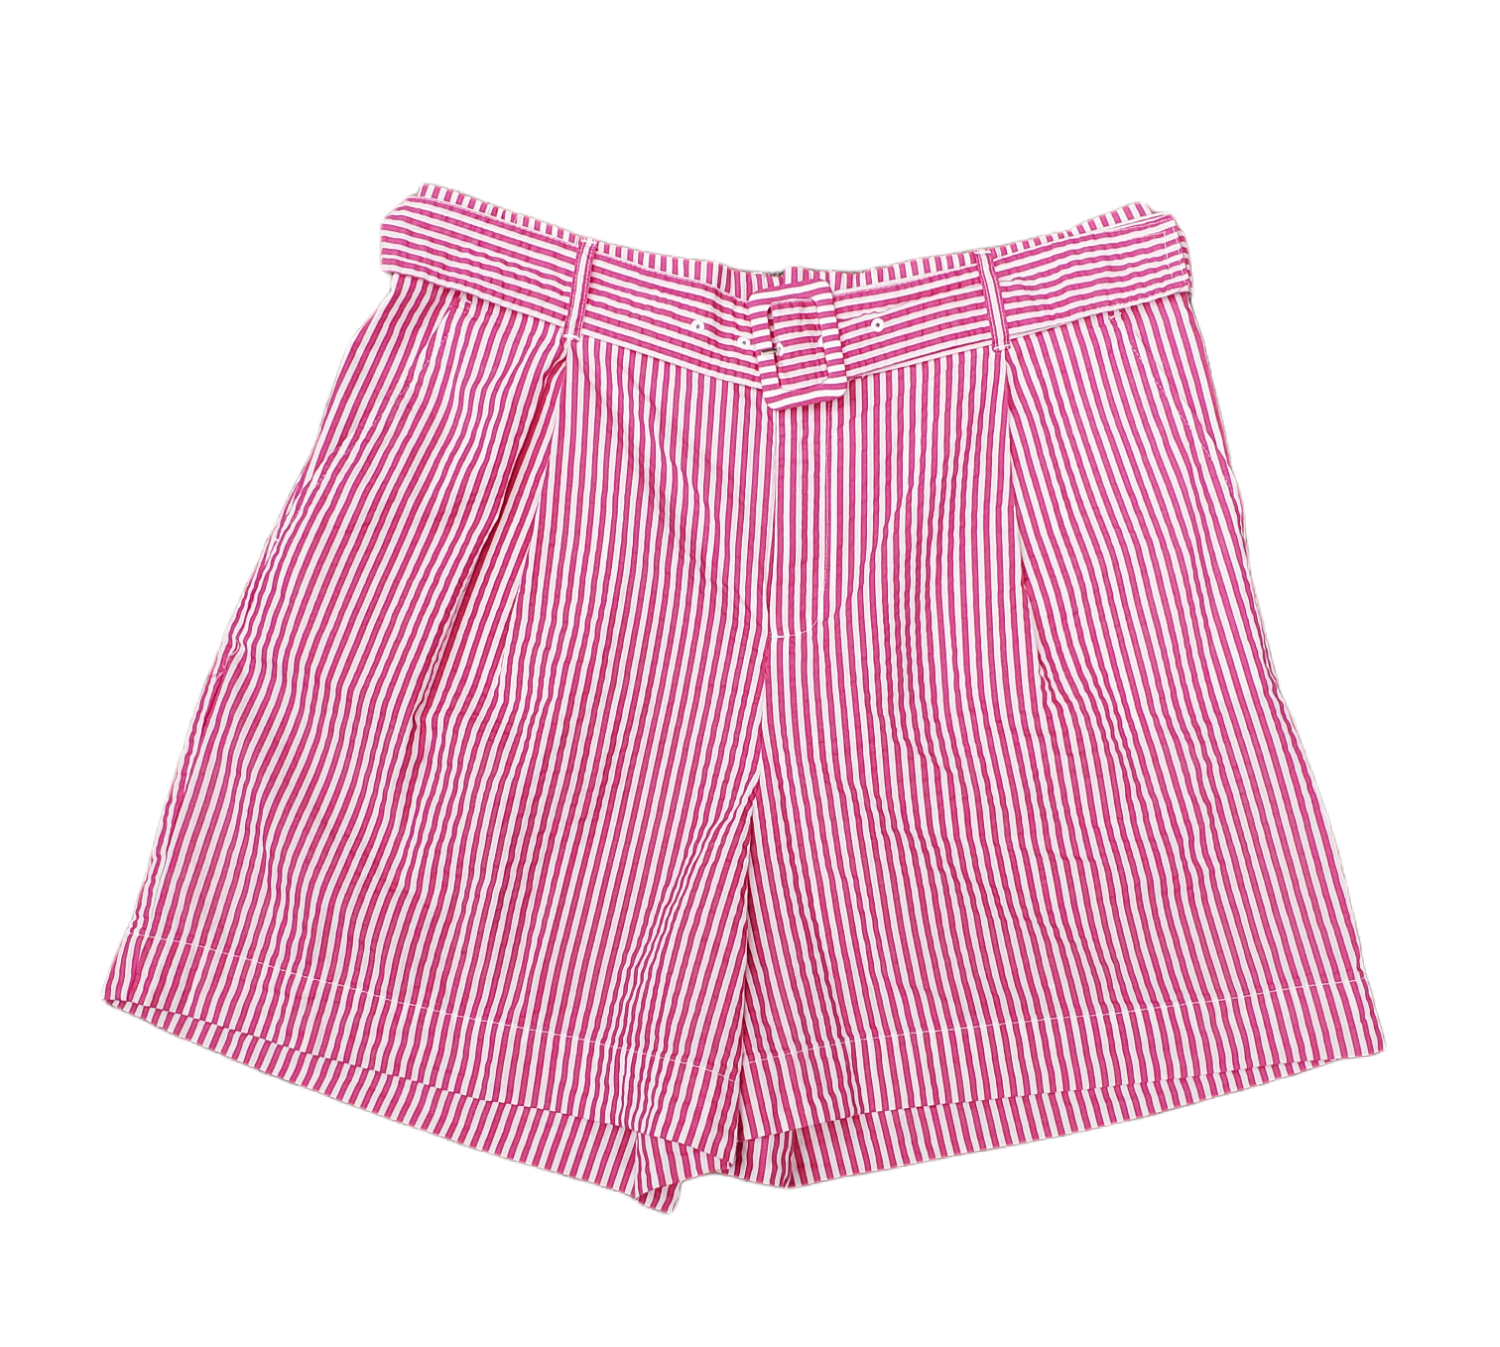 Shorts By A New Day  Size: 1x